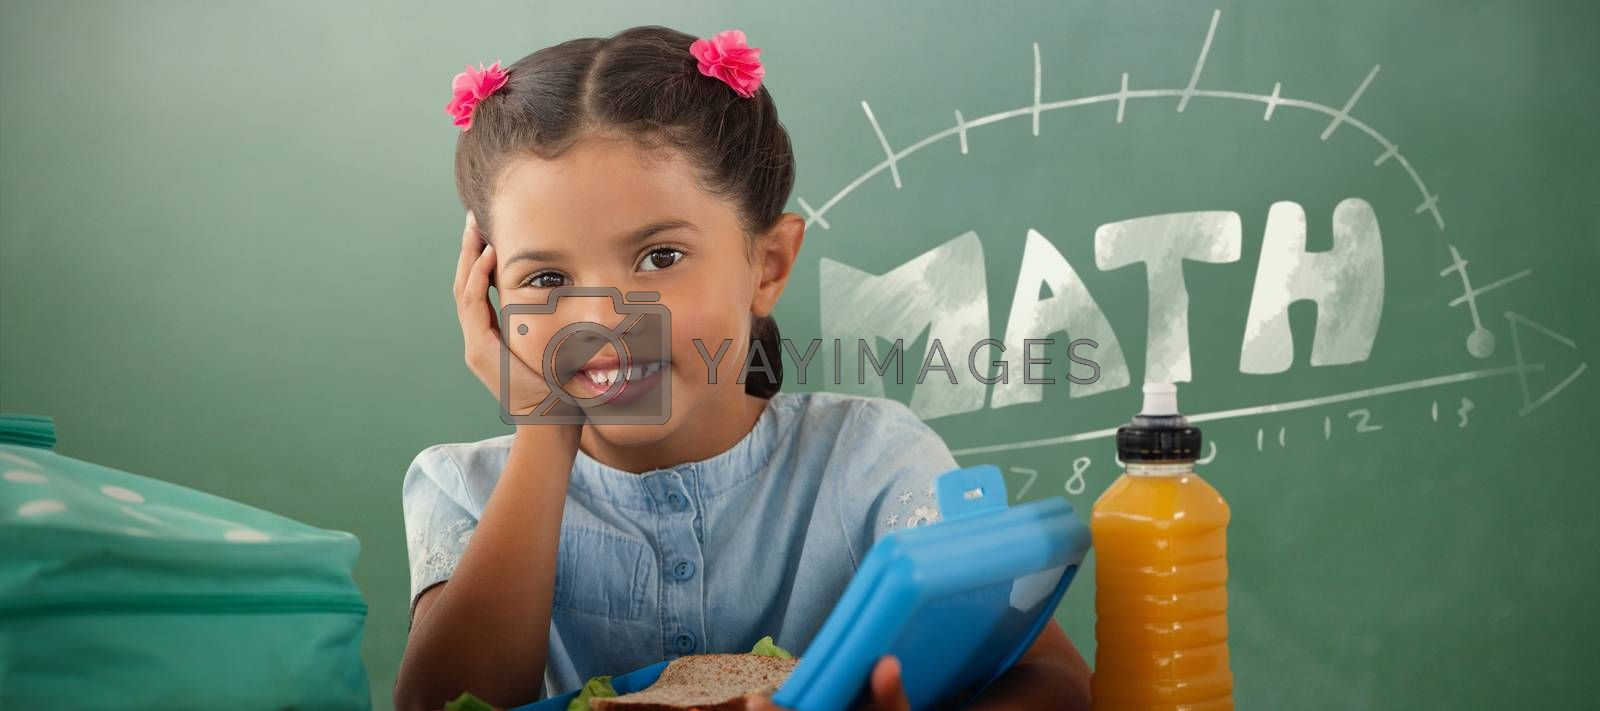 Composite image of smiling girl with lunch box at table by Wavebreakmedia